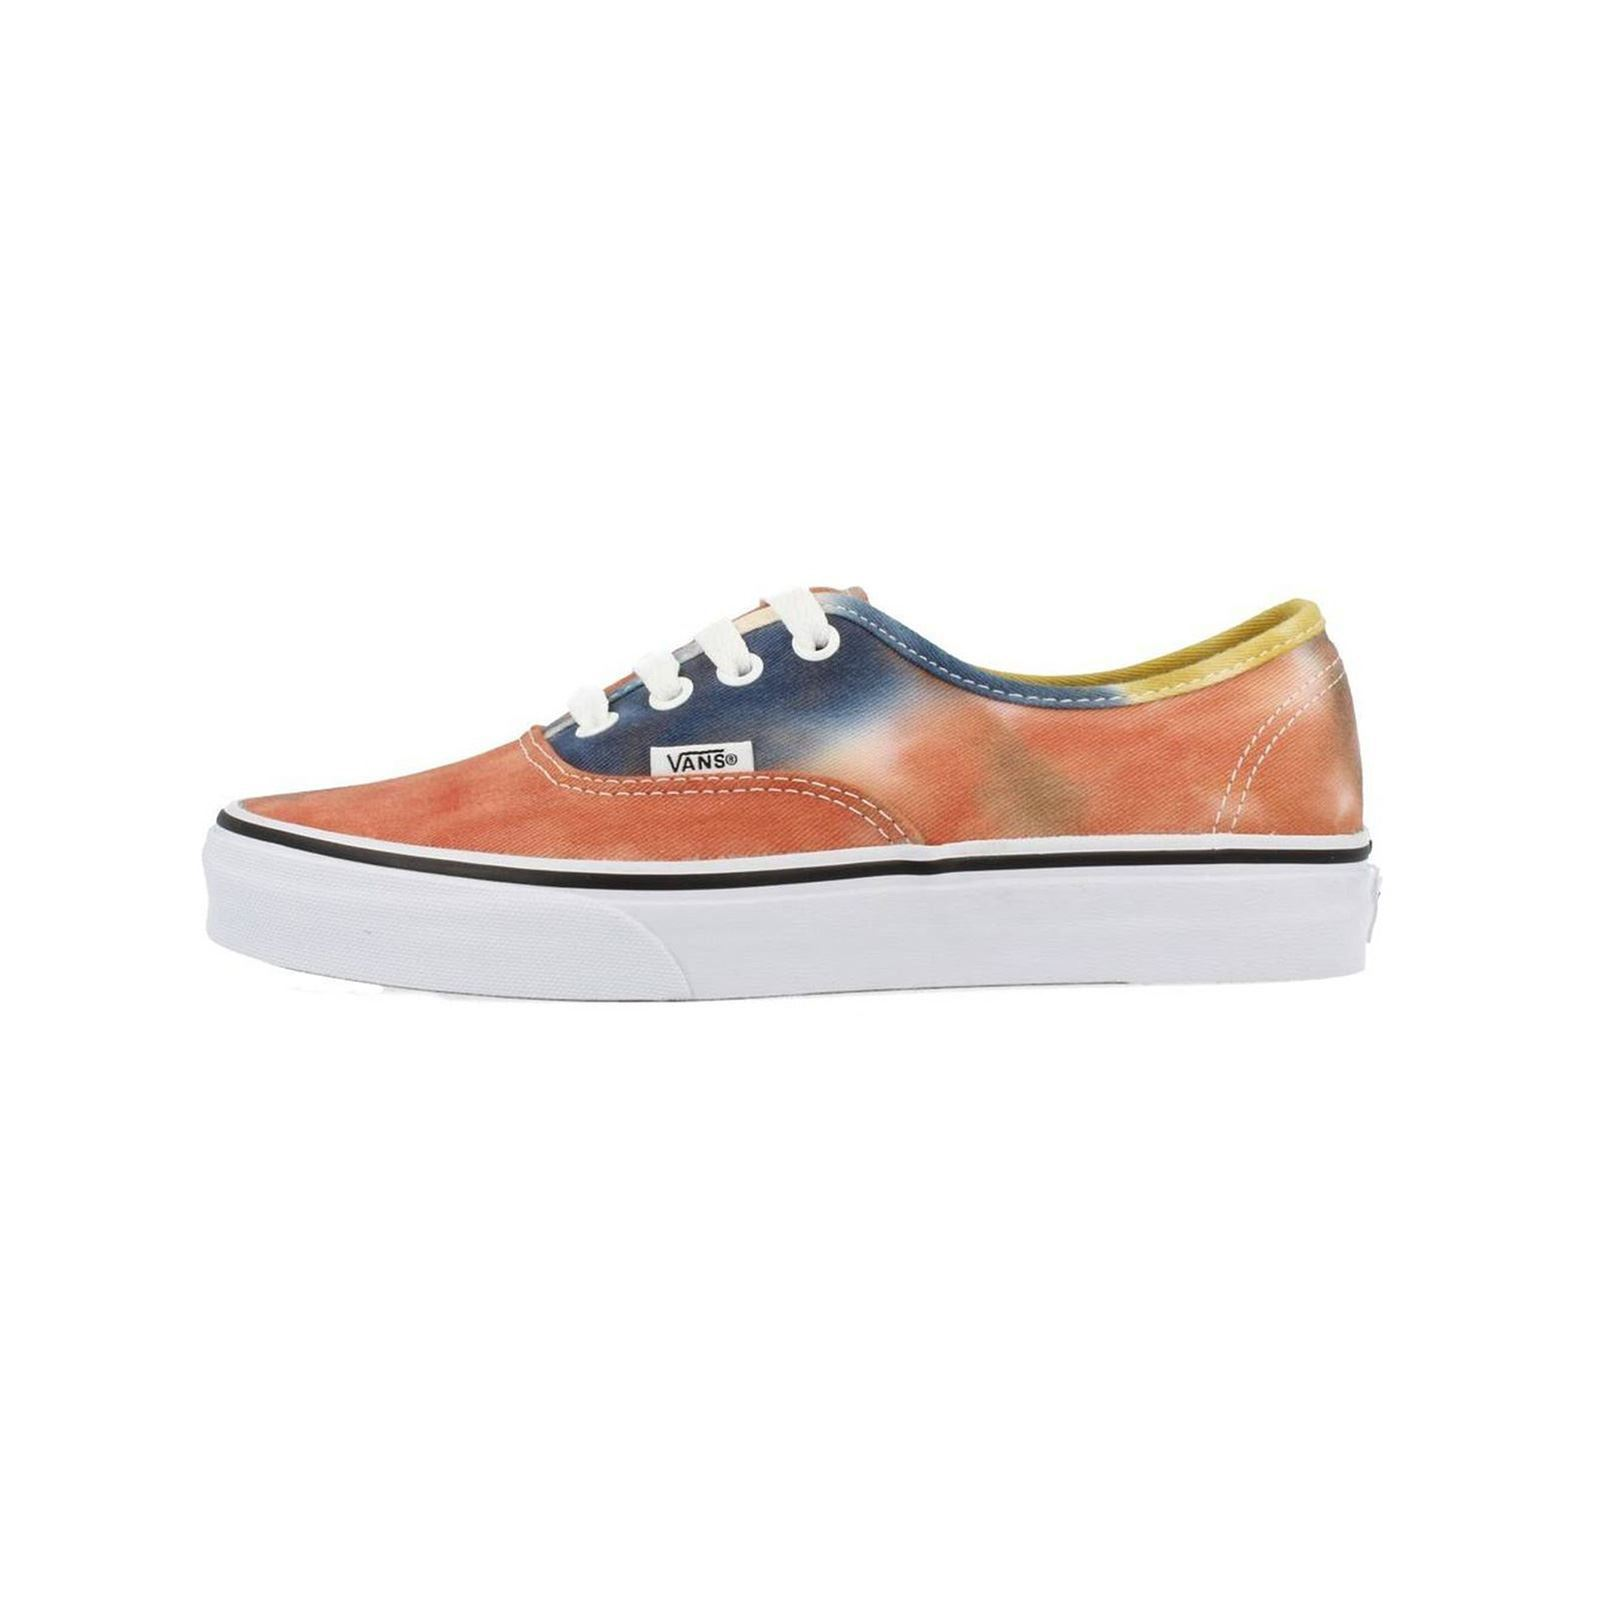 Baskets Vans MulticoloreBrandalley Baskets Vans Authentic Authentic MulticoloreBrandalley Authentic Vans MulticoloreBrandalley Vans Authentic Baskets DWE29HI